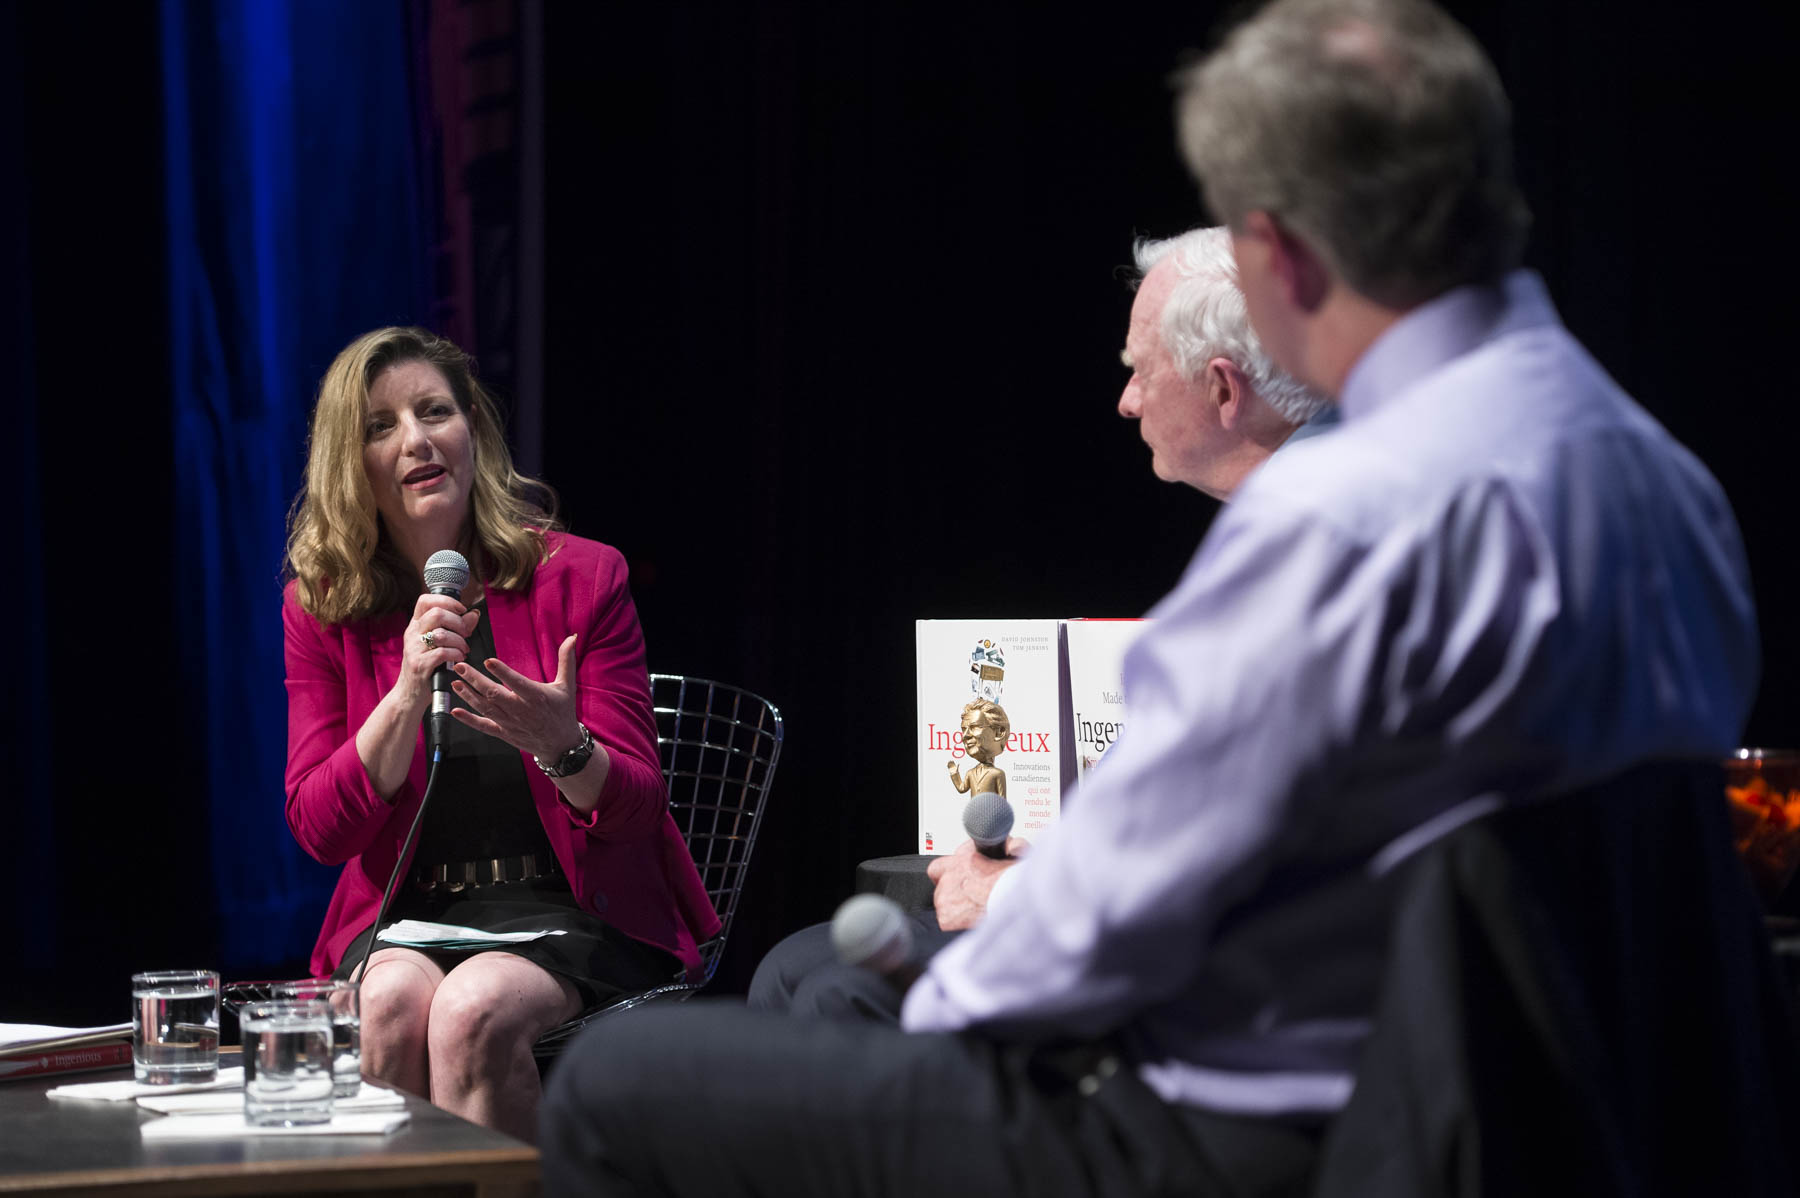 The on-stage conversation was hosted by local broadcaster Christine McLean.